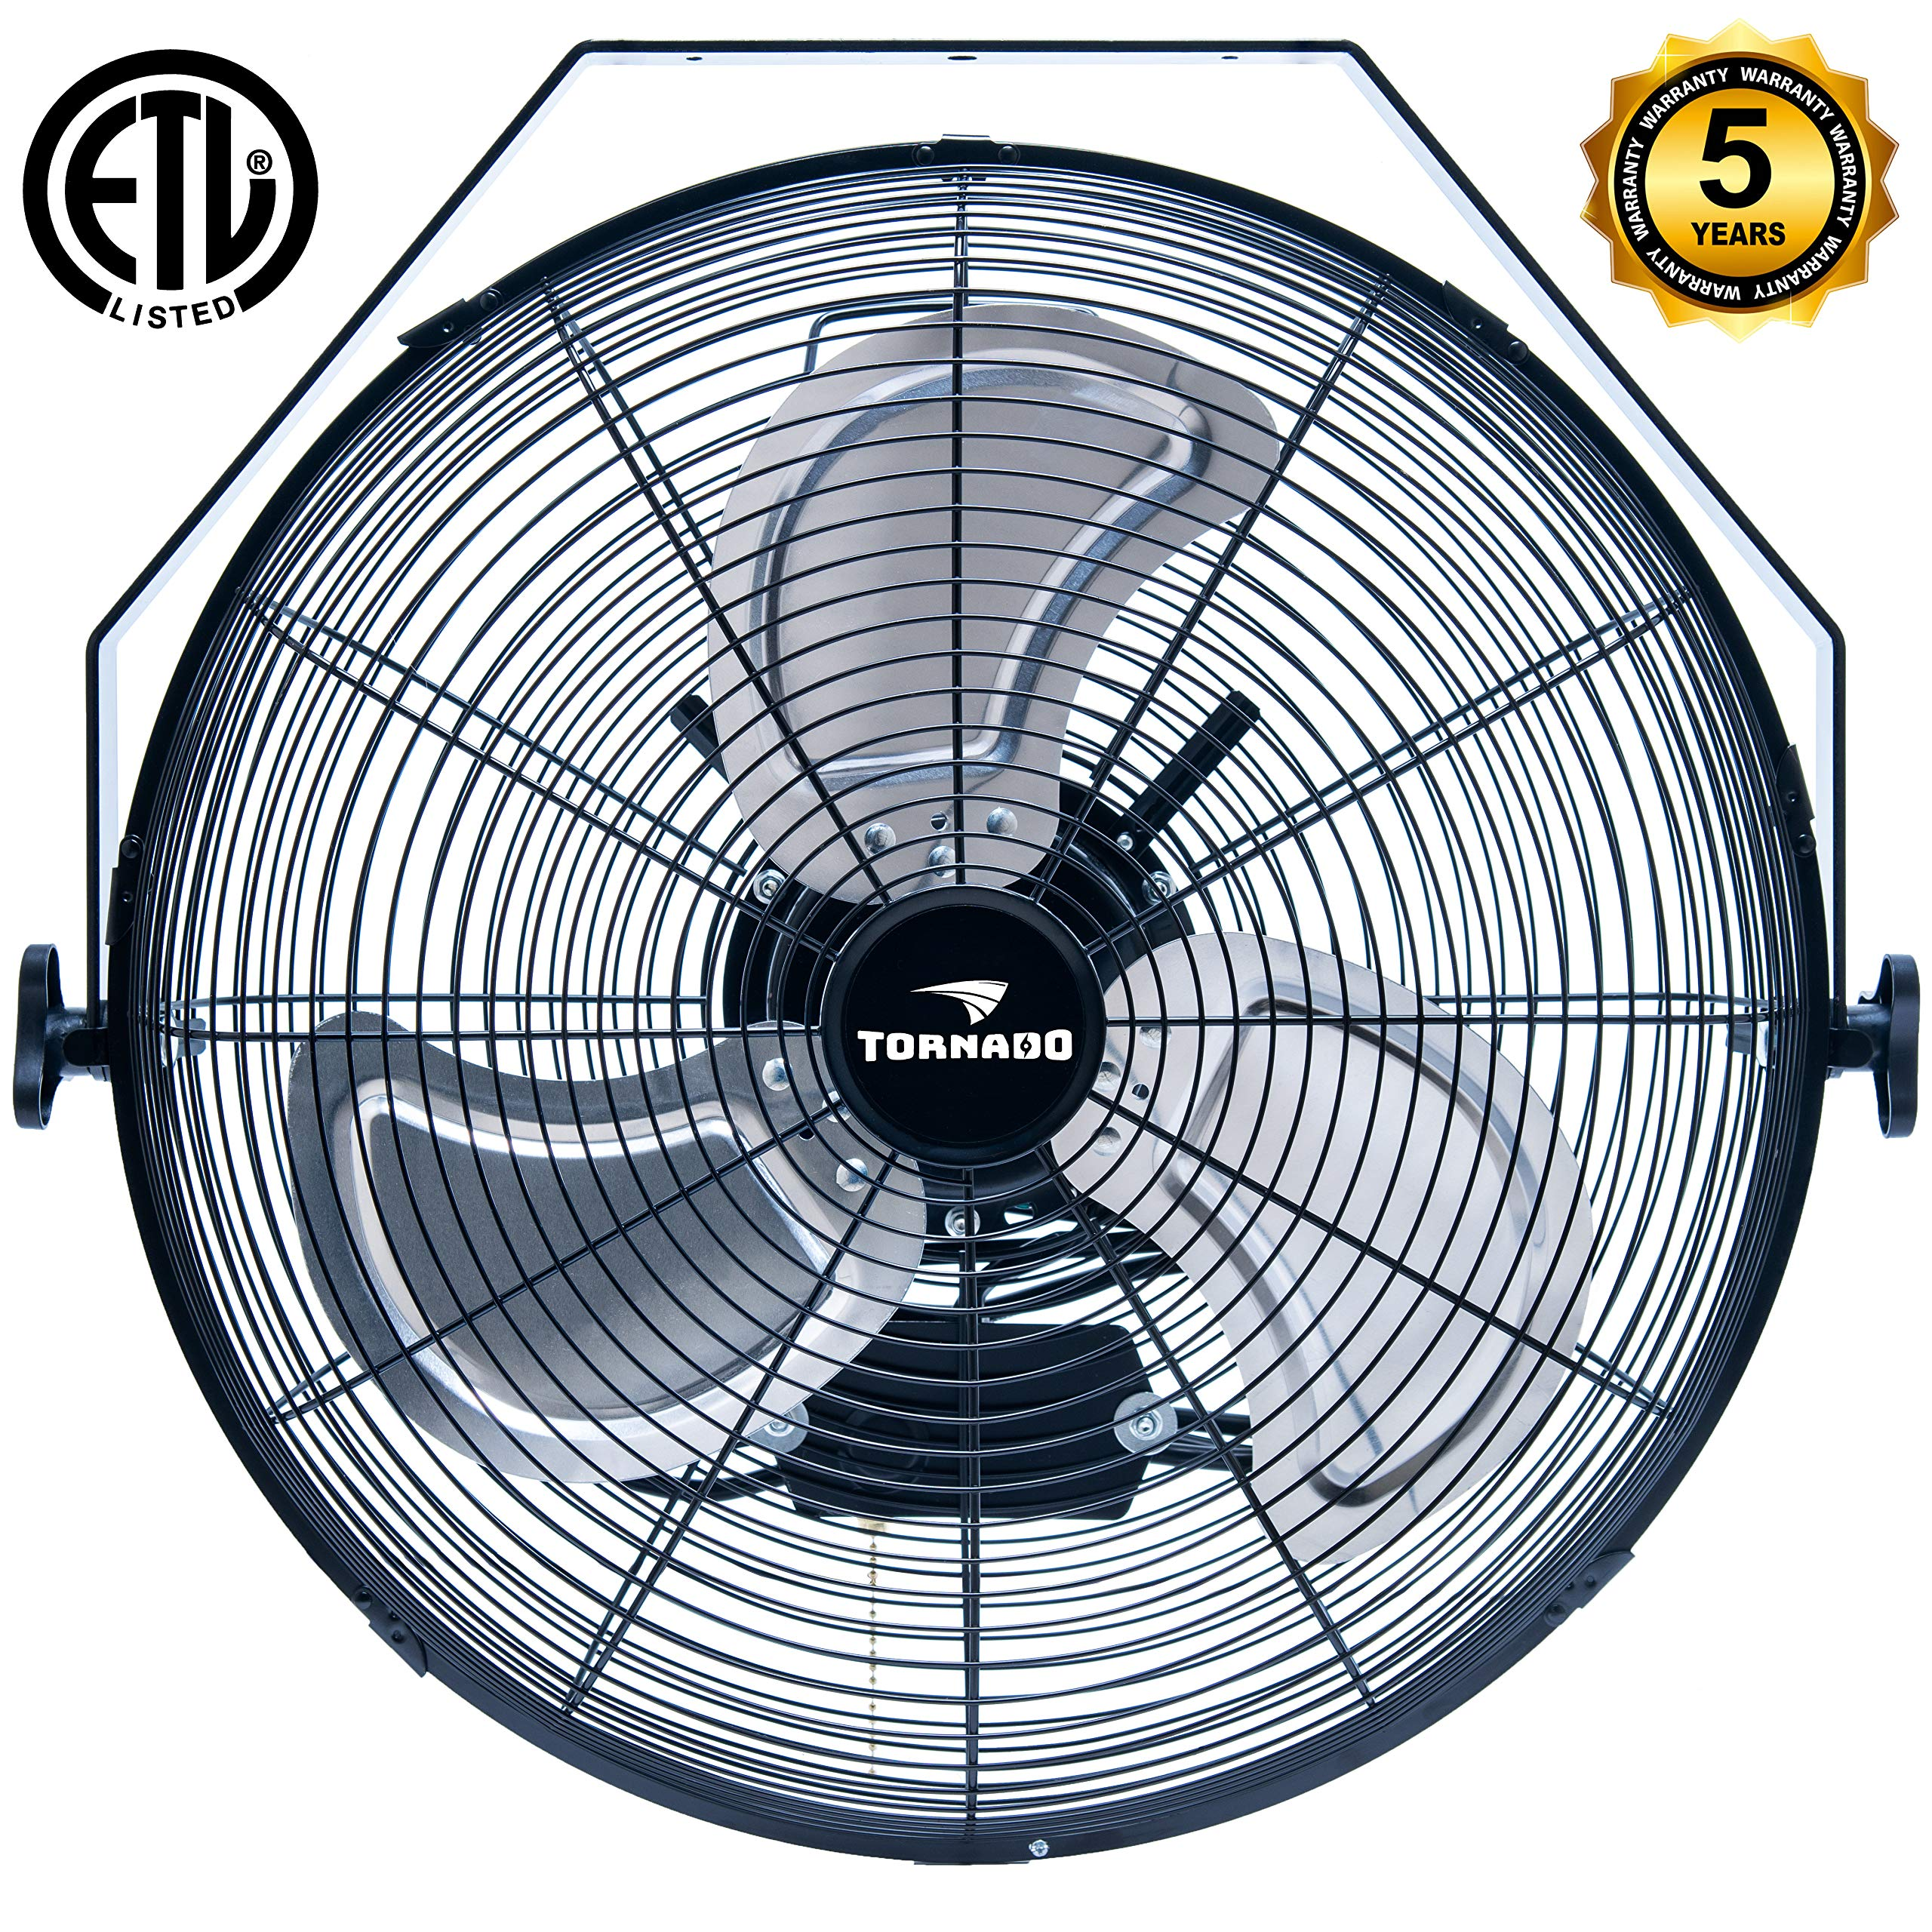 Tornado - 18 Inch High Velocity Industrial Wall Fan - 3 Speed - for Industrial, Commercial, Residential, and Shop Use - ETL Safety Listed - 5 Years Warranty by Tornado